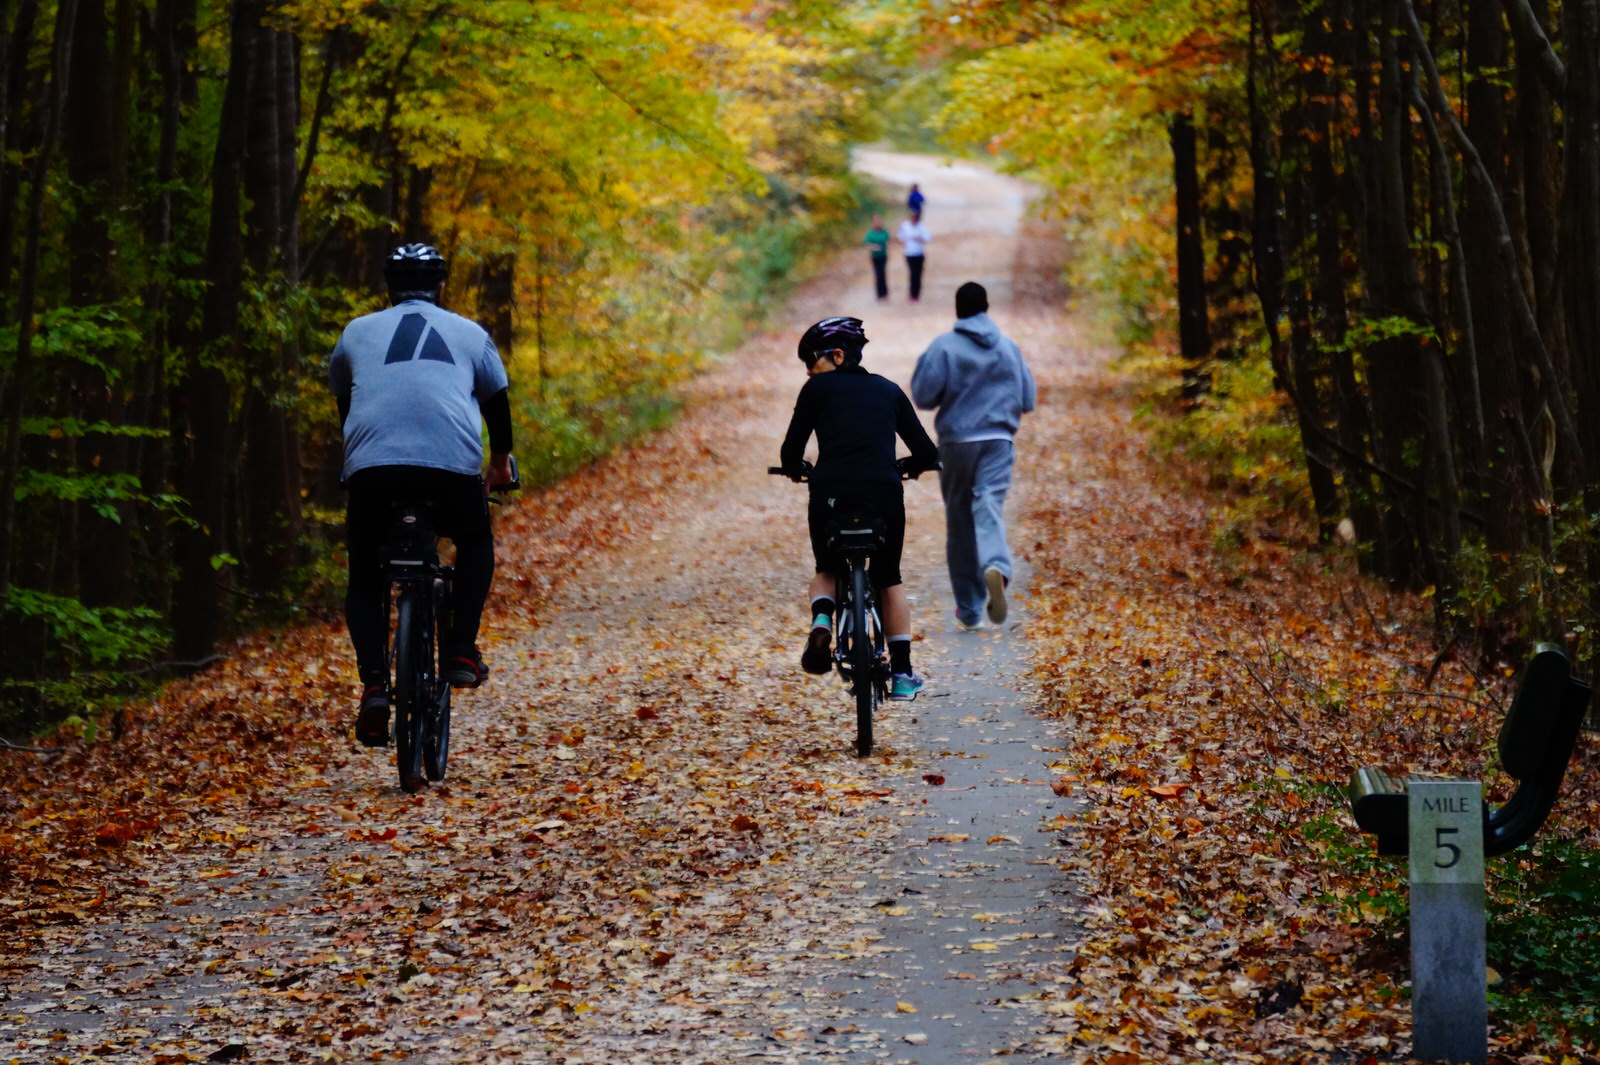 photo: Bikers and walkers having fun on the trail. Photo by Sarina Lewis.